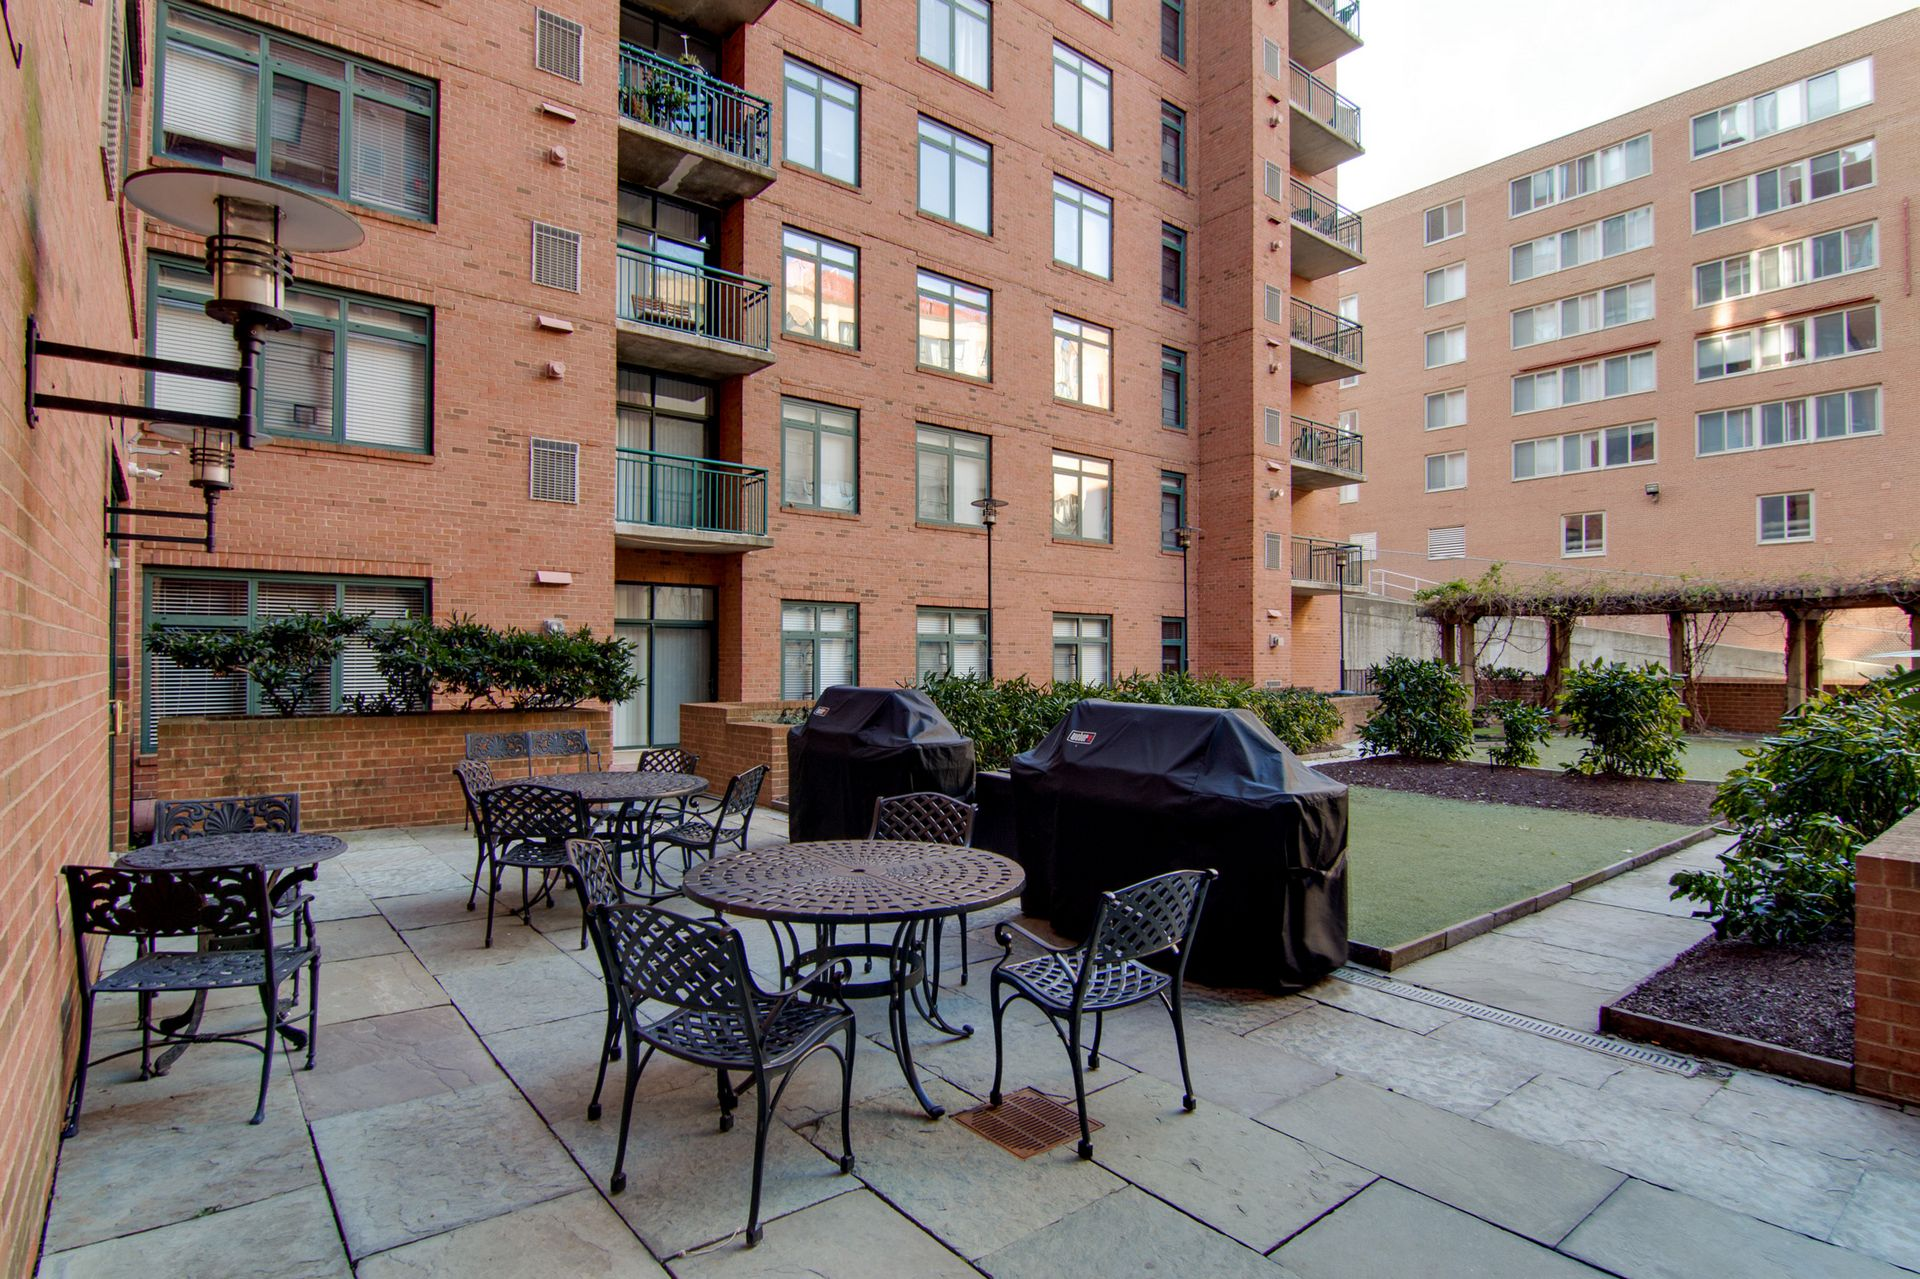 Patio area with seating, table, and grills